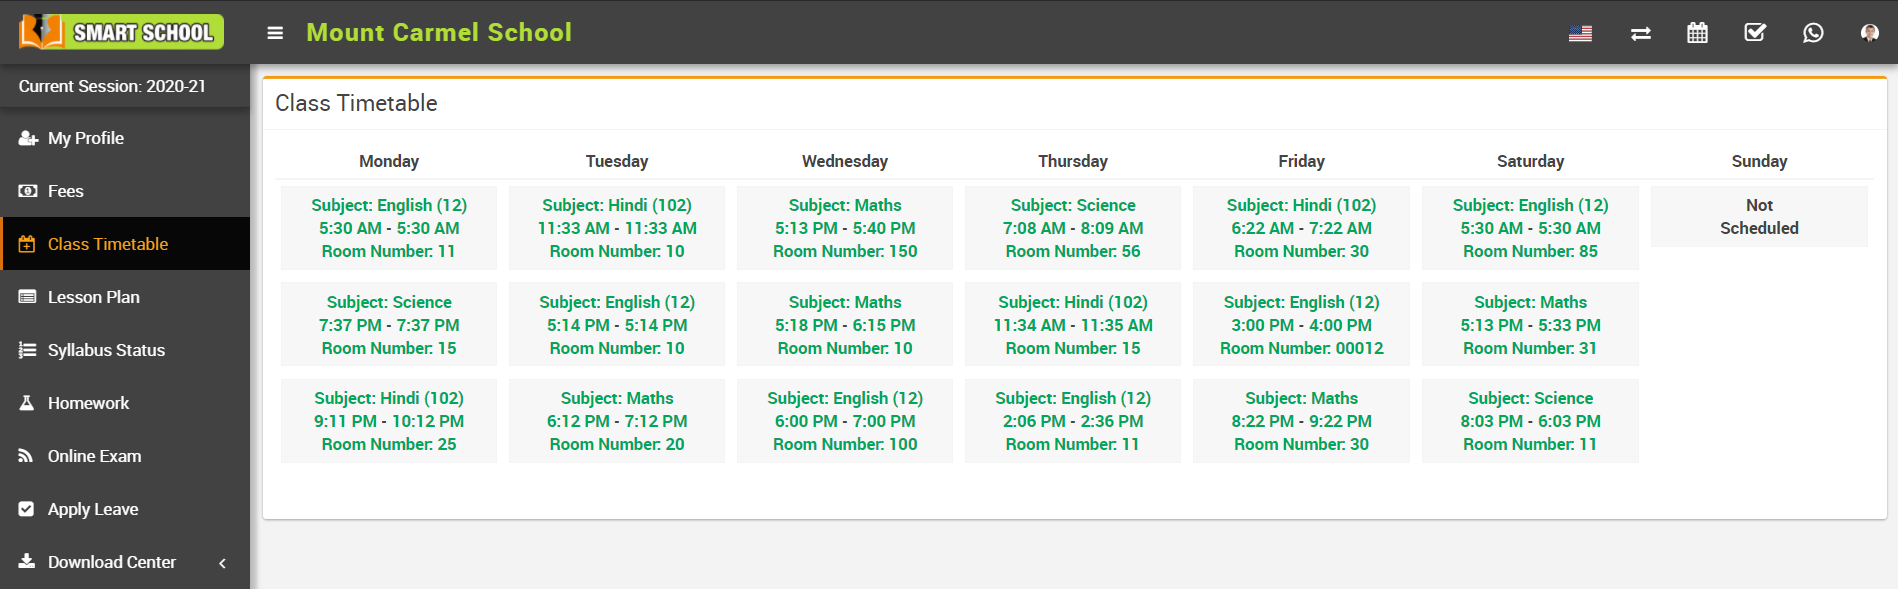 student class time table image